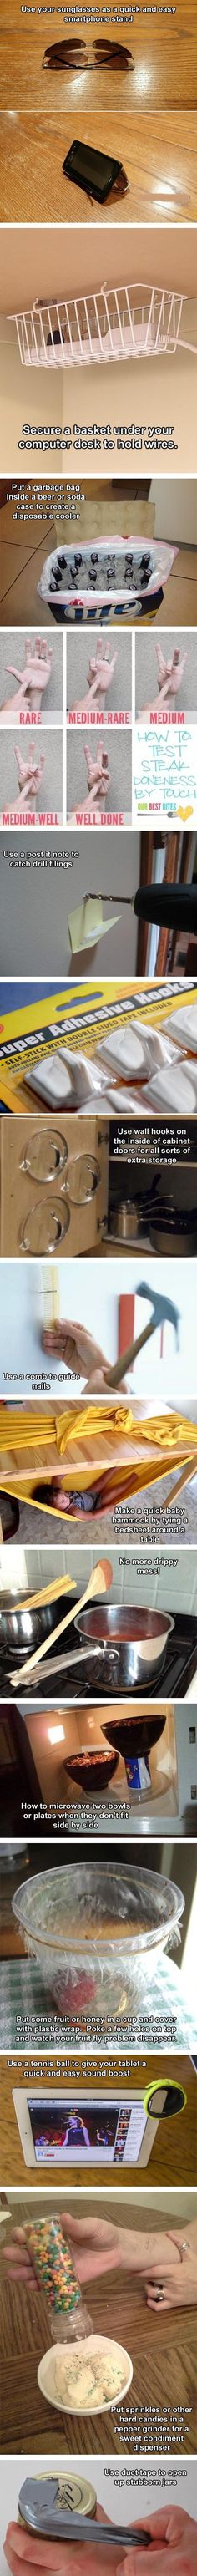 Super Crazy Everyday Life Hacks You Never Thought Of House - 20 life hacks really shouldnt try